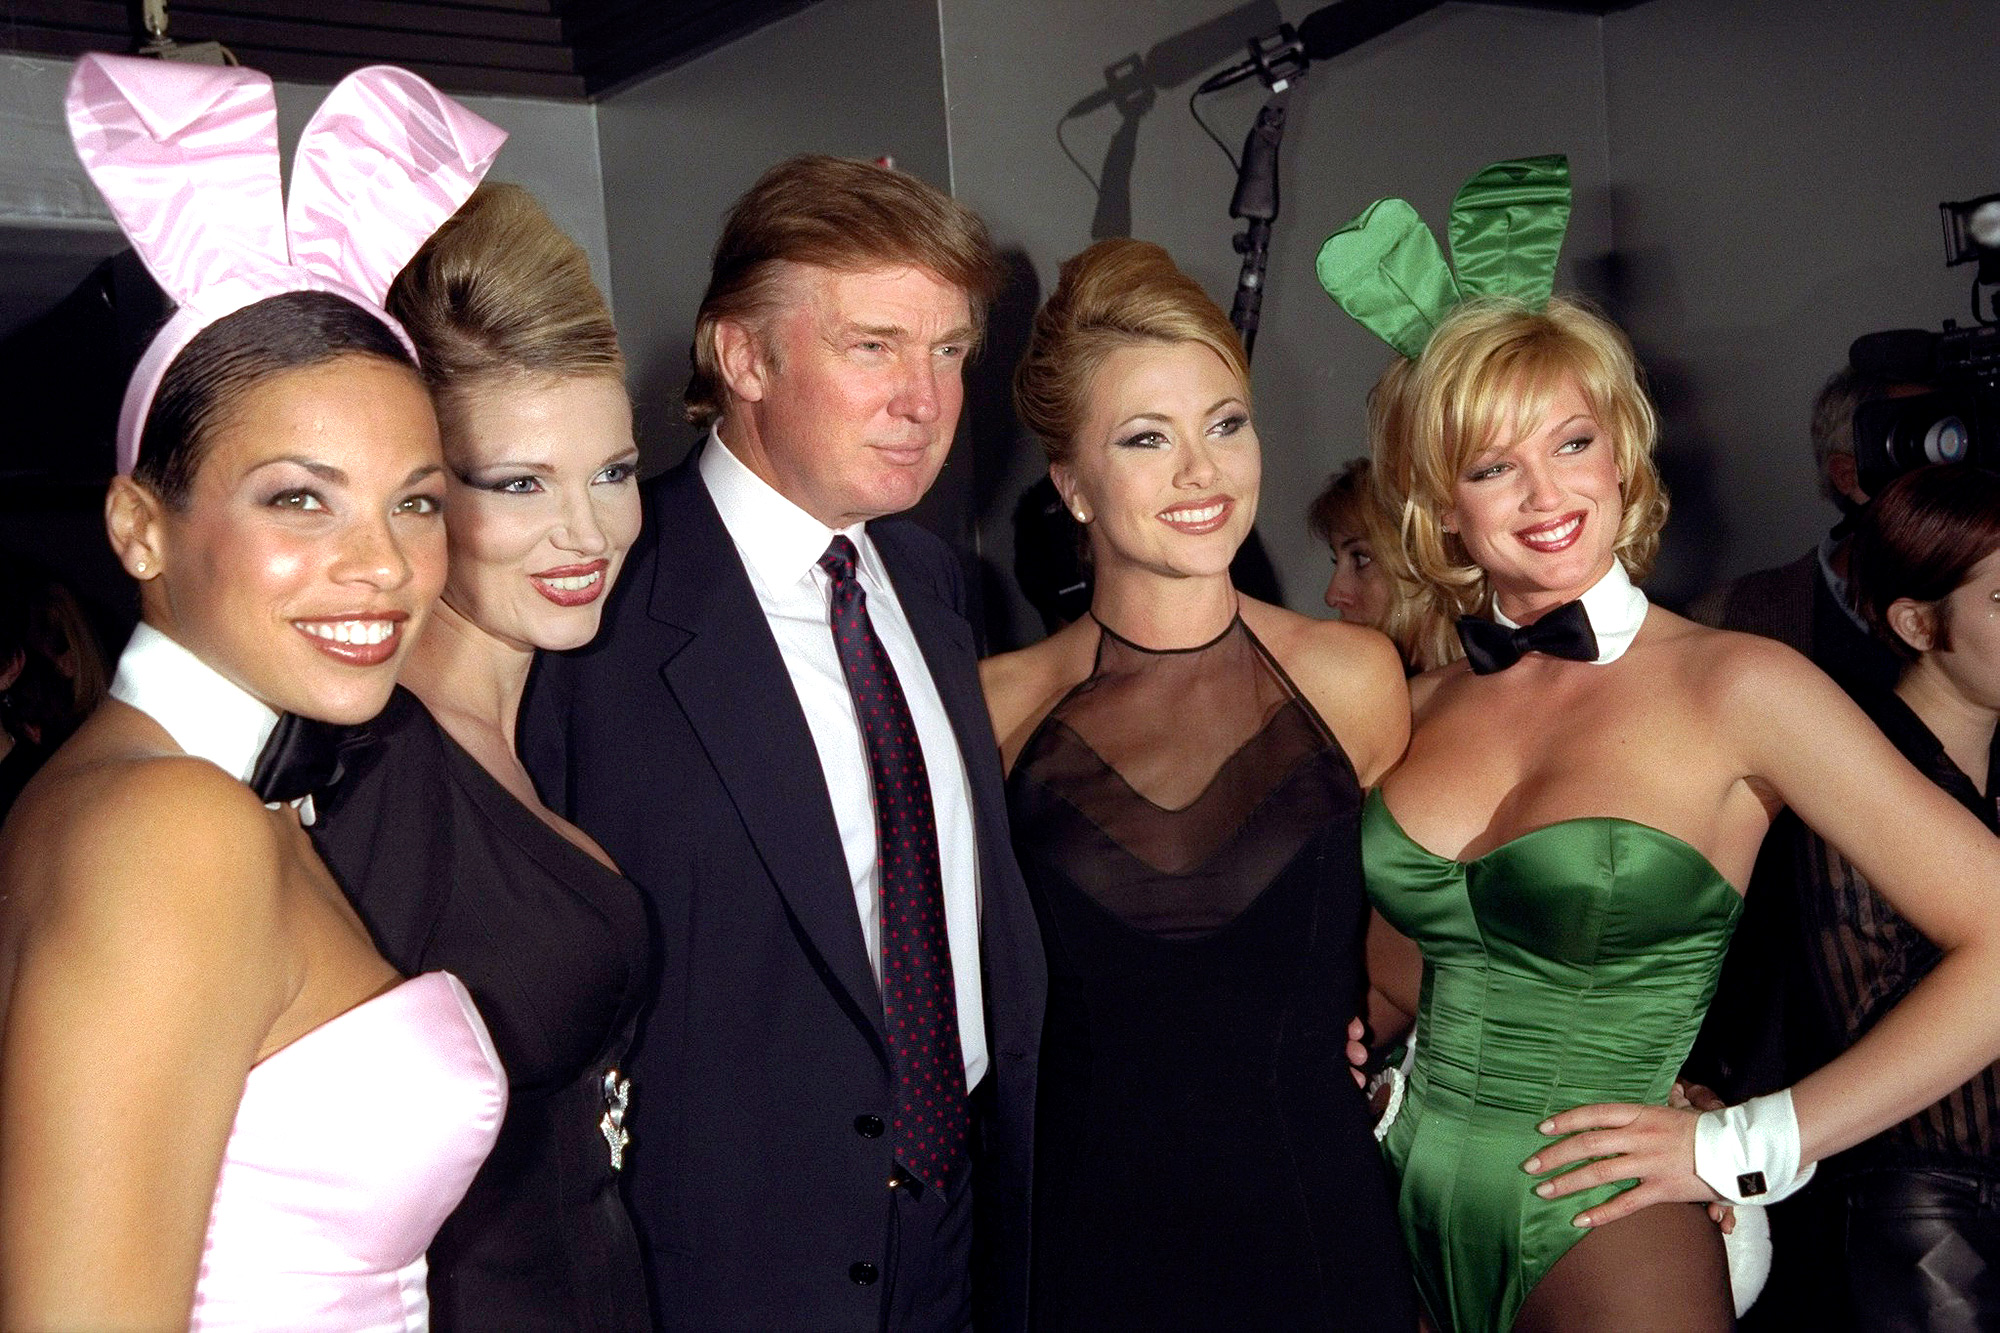 Donald Trump is flanked by Playmates at a party celebrating